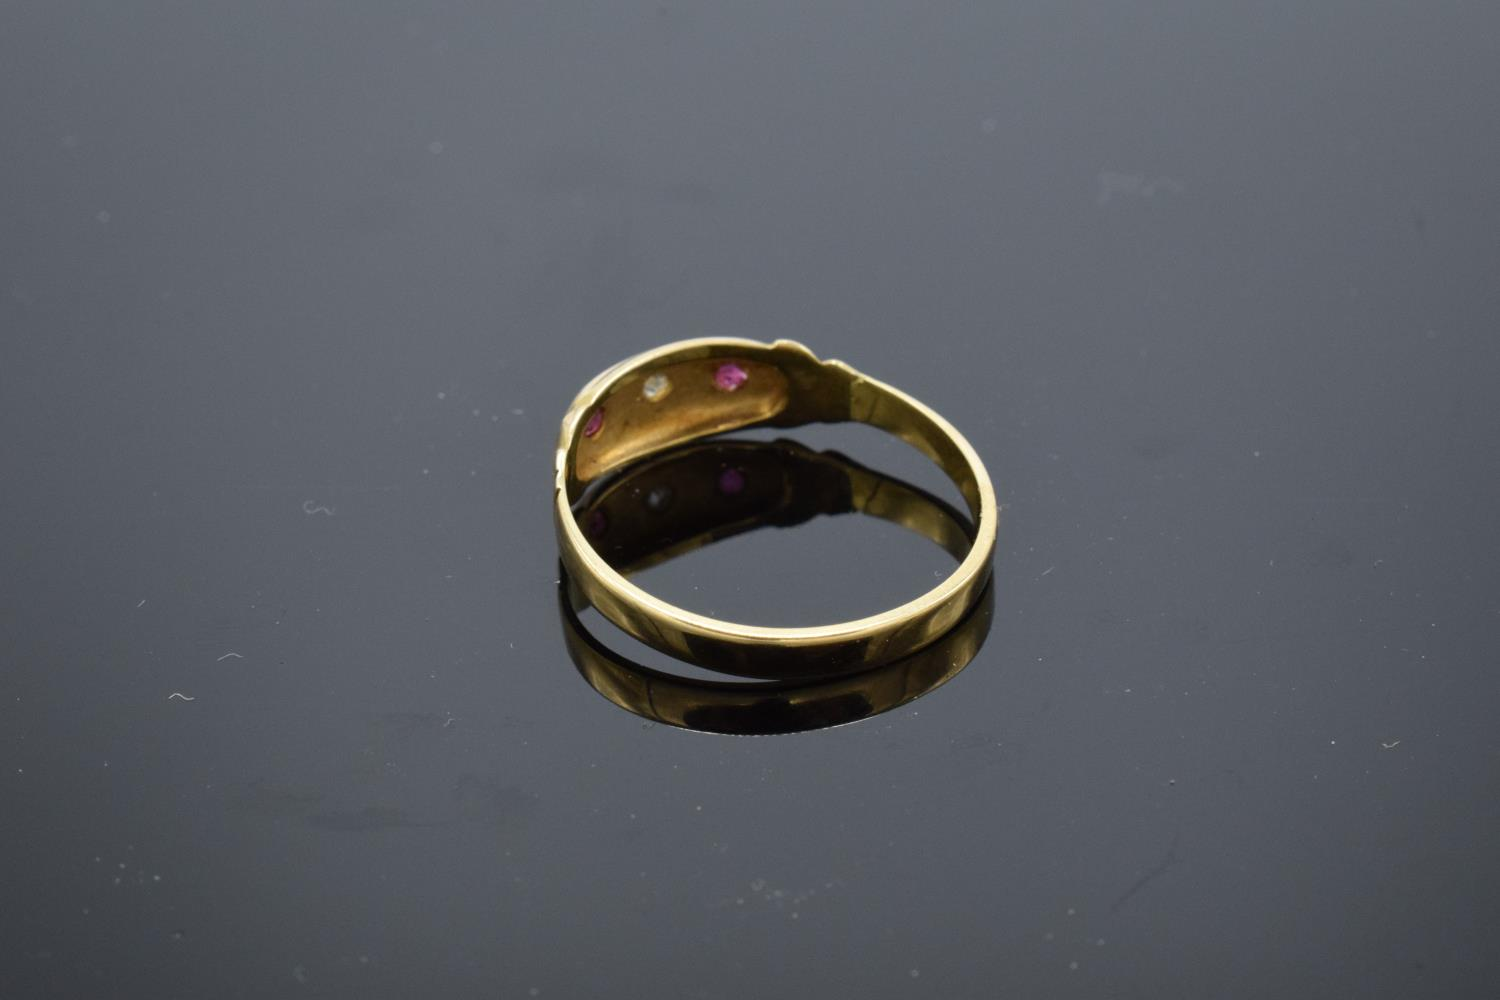 18ct gold ladies ring set with rubies and a diamond stone. UK size P/Q. Gross weight 2.2 grams. - Image 3 of 3